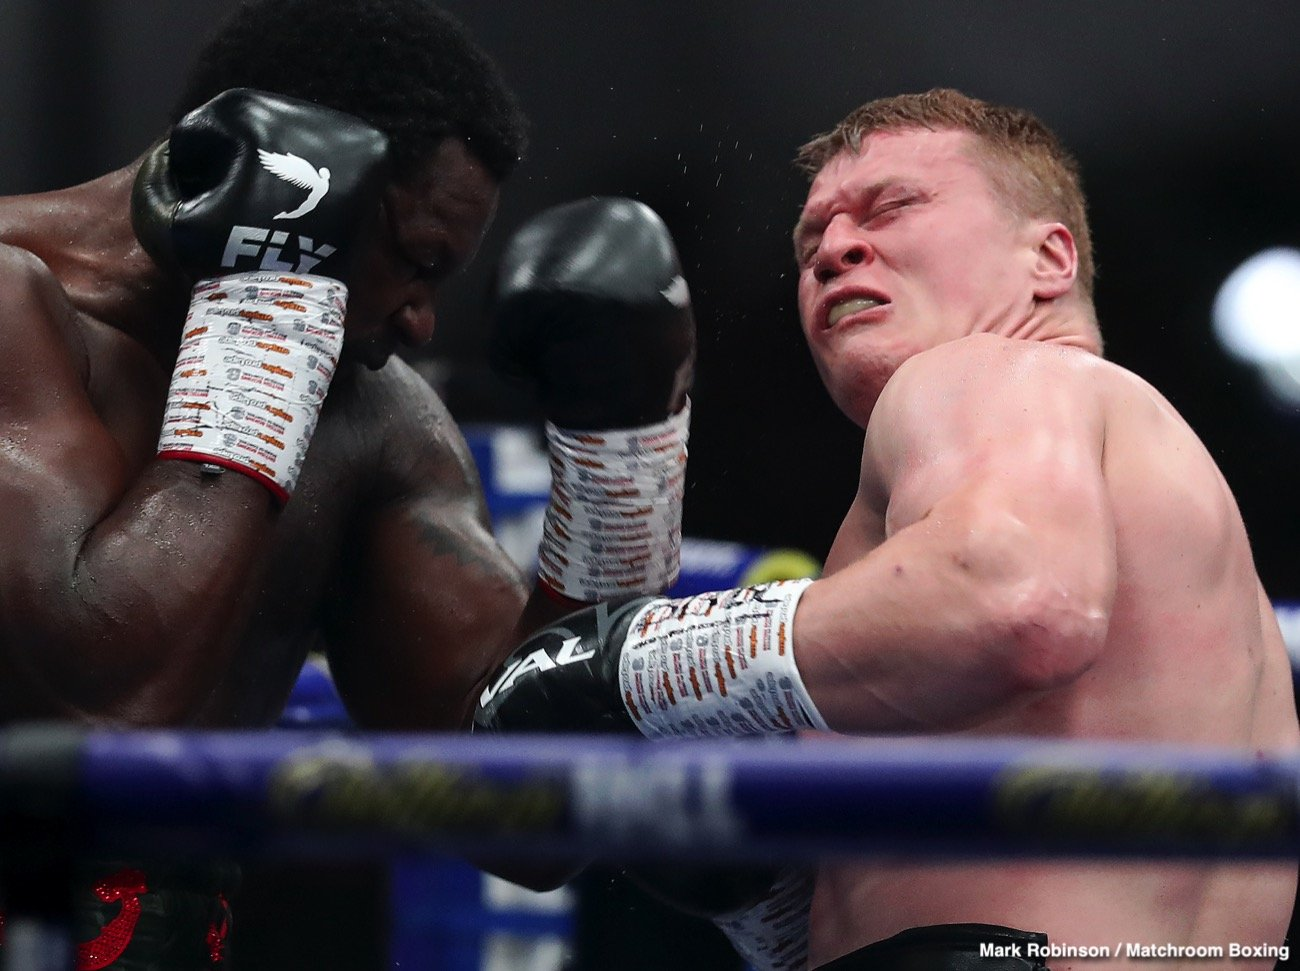 Alexander Povetkin, Dillian Whyte - Dillian Whyte has quite sensationally come out and said how he doesn't believe Alexander Povetkin really caught the coronavirus, COVID-19. Speaking with Sky Sports, Whyte said he thinks Povetkin - who of course knocked him out in the fifth round back in August, this after the Russian has been on the floor two times himself - made it up so as to buy more time in which to get ready for their return fight.